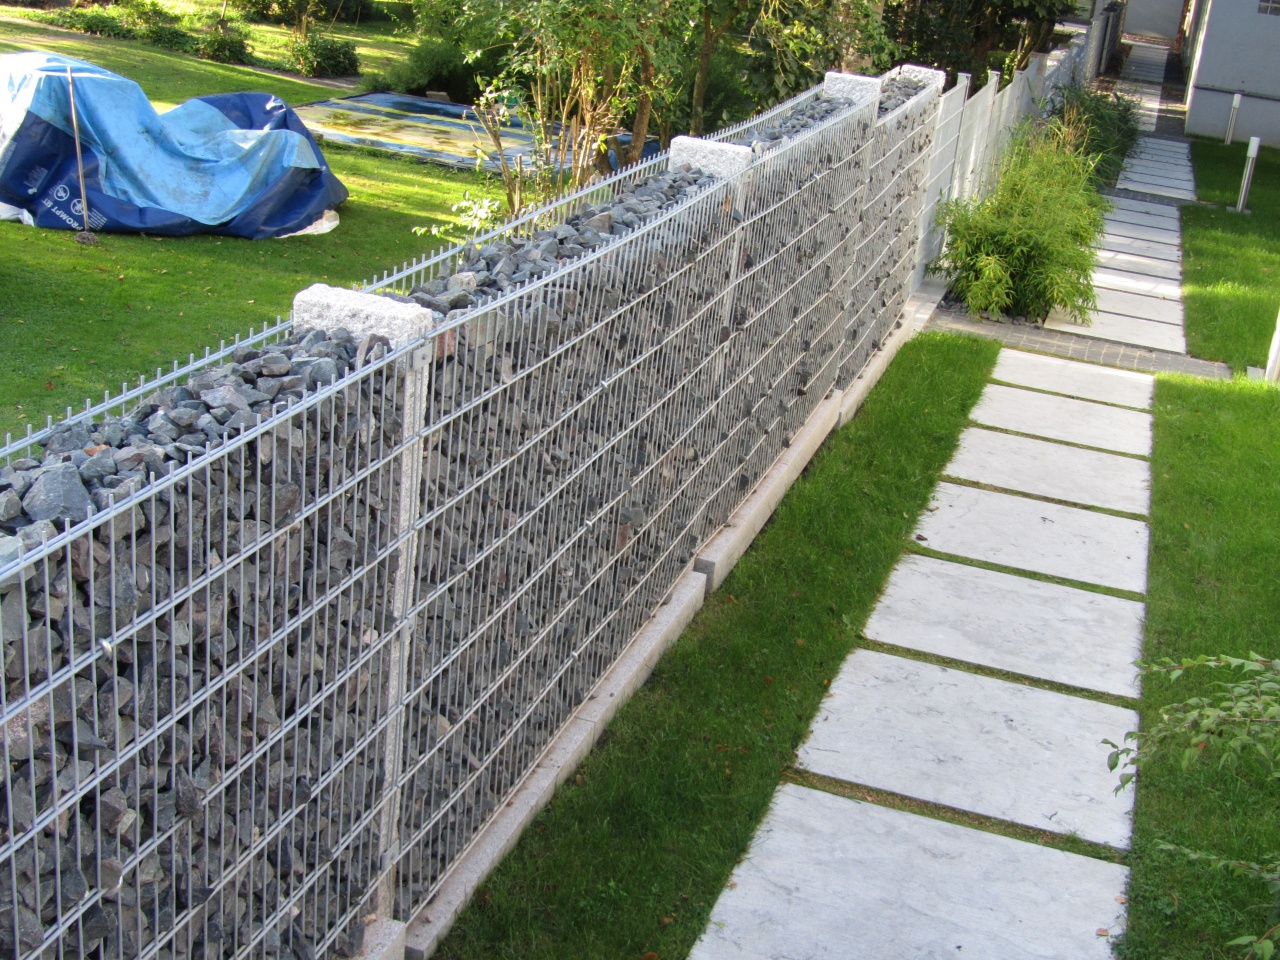 1000 images about gabion walls on pinterest planters for Cloture de piscine